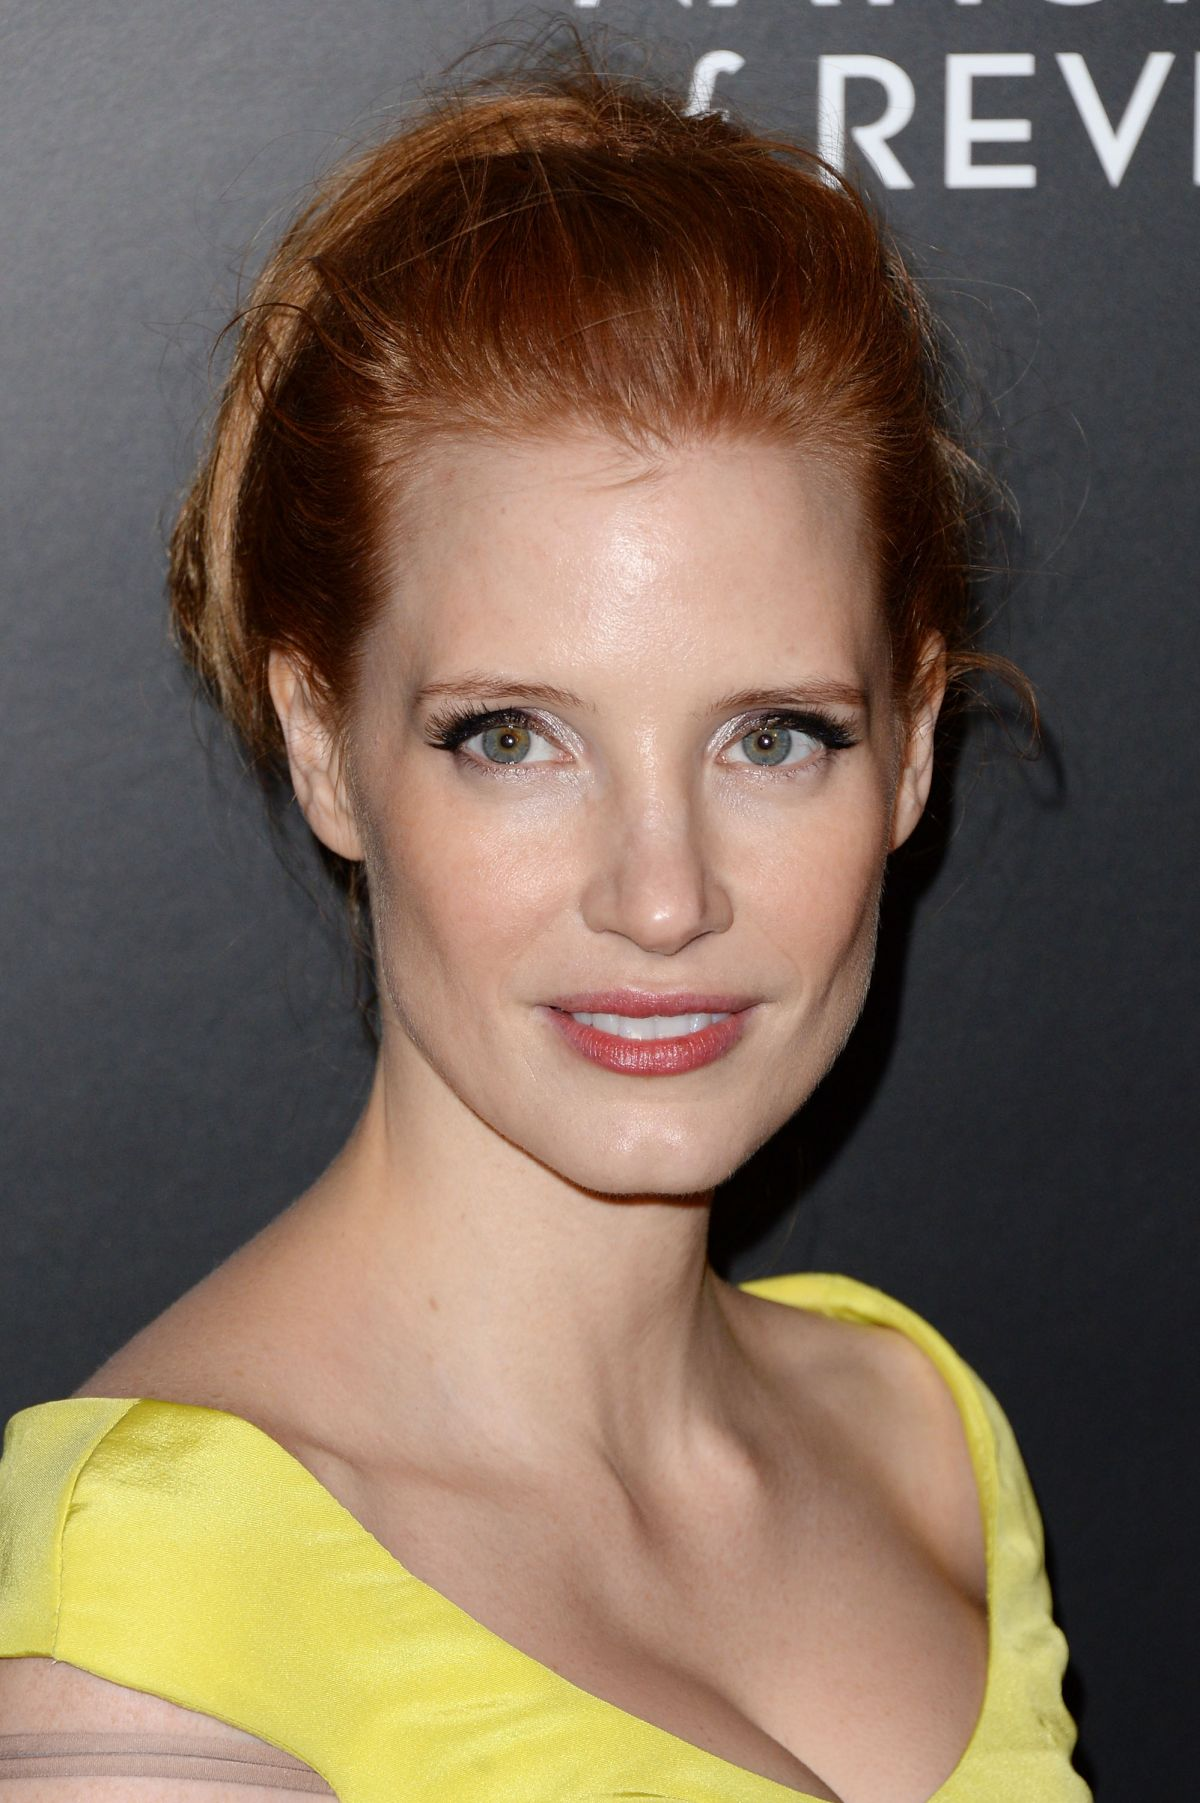 JESSICA CHASTAIN at 2014 Jessica Chastain